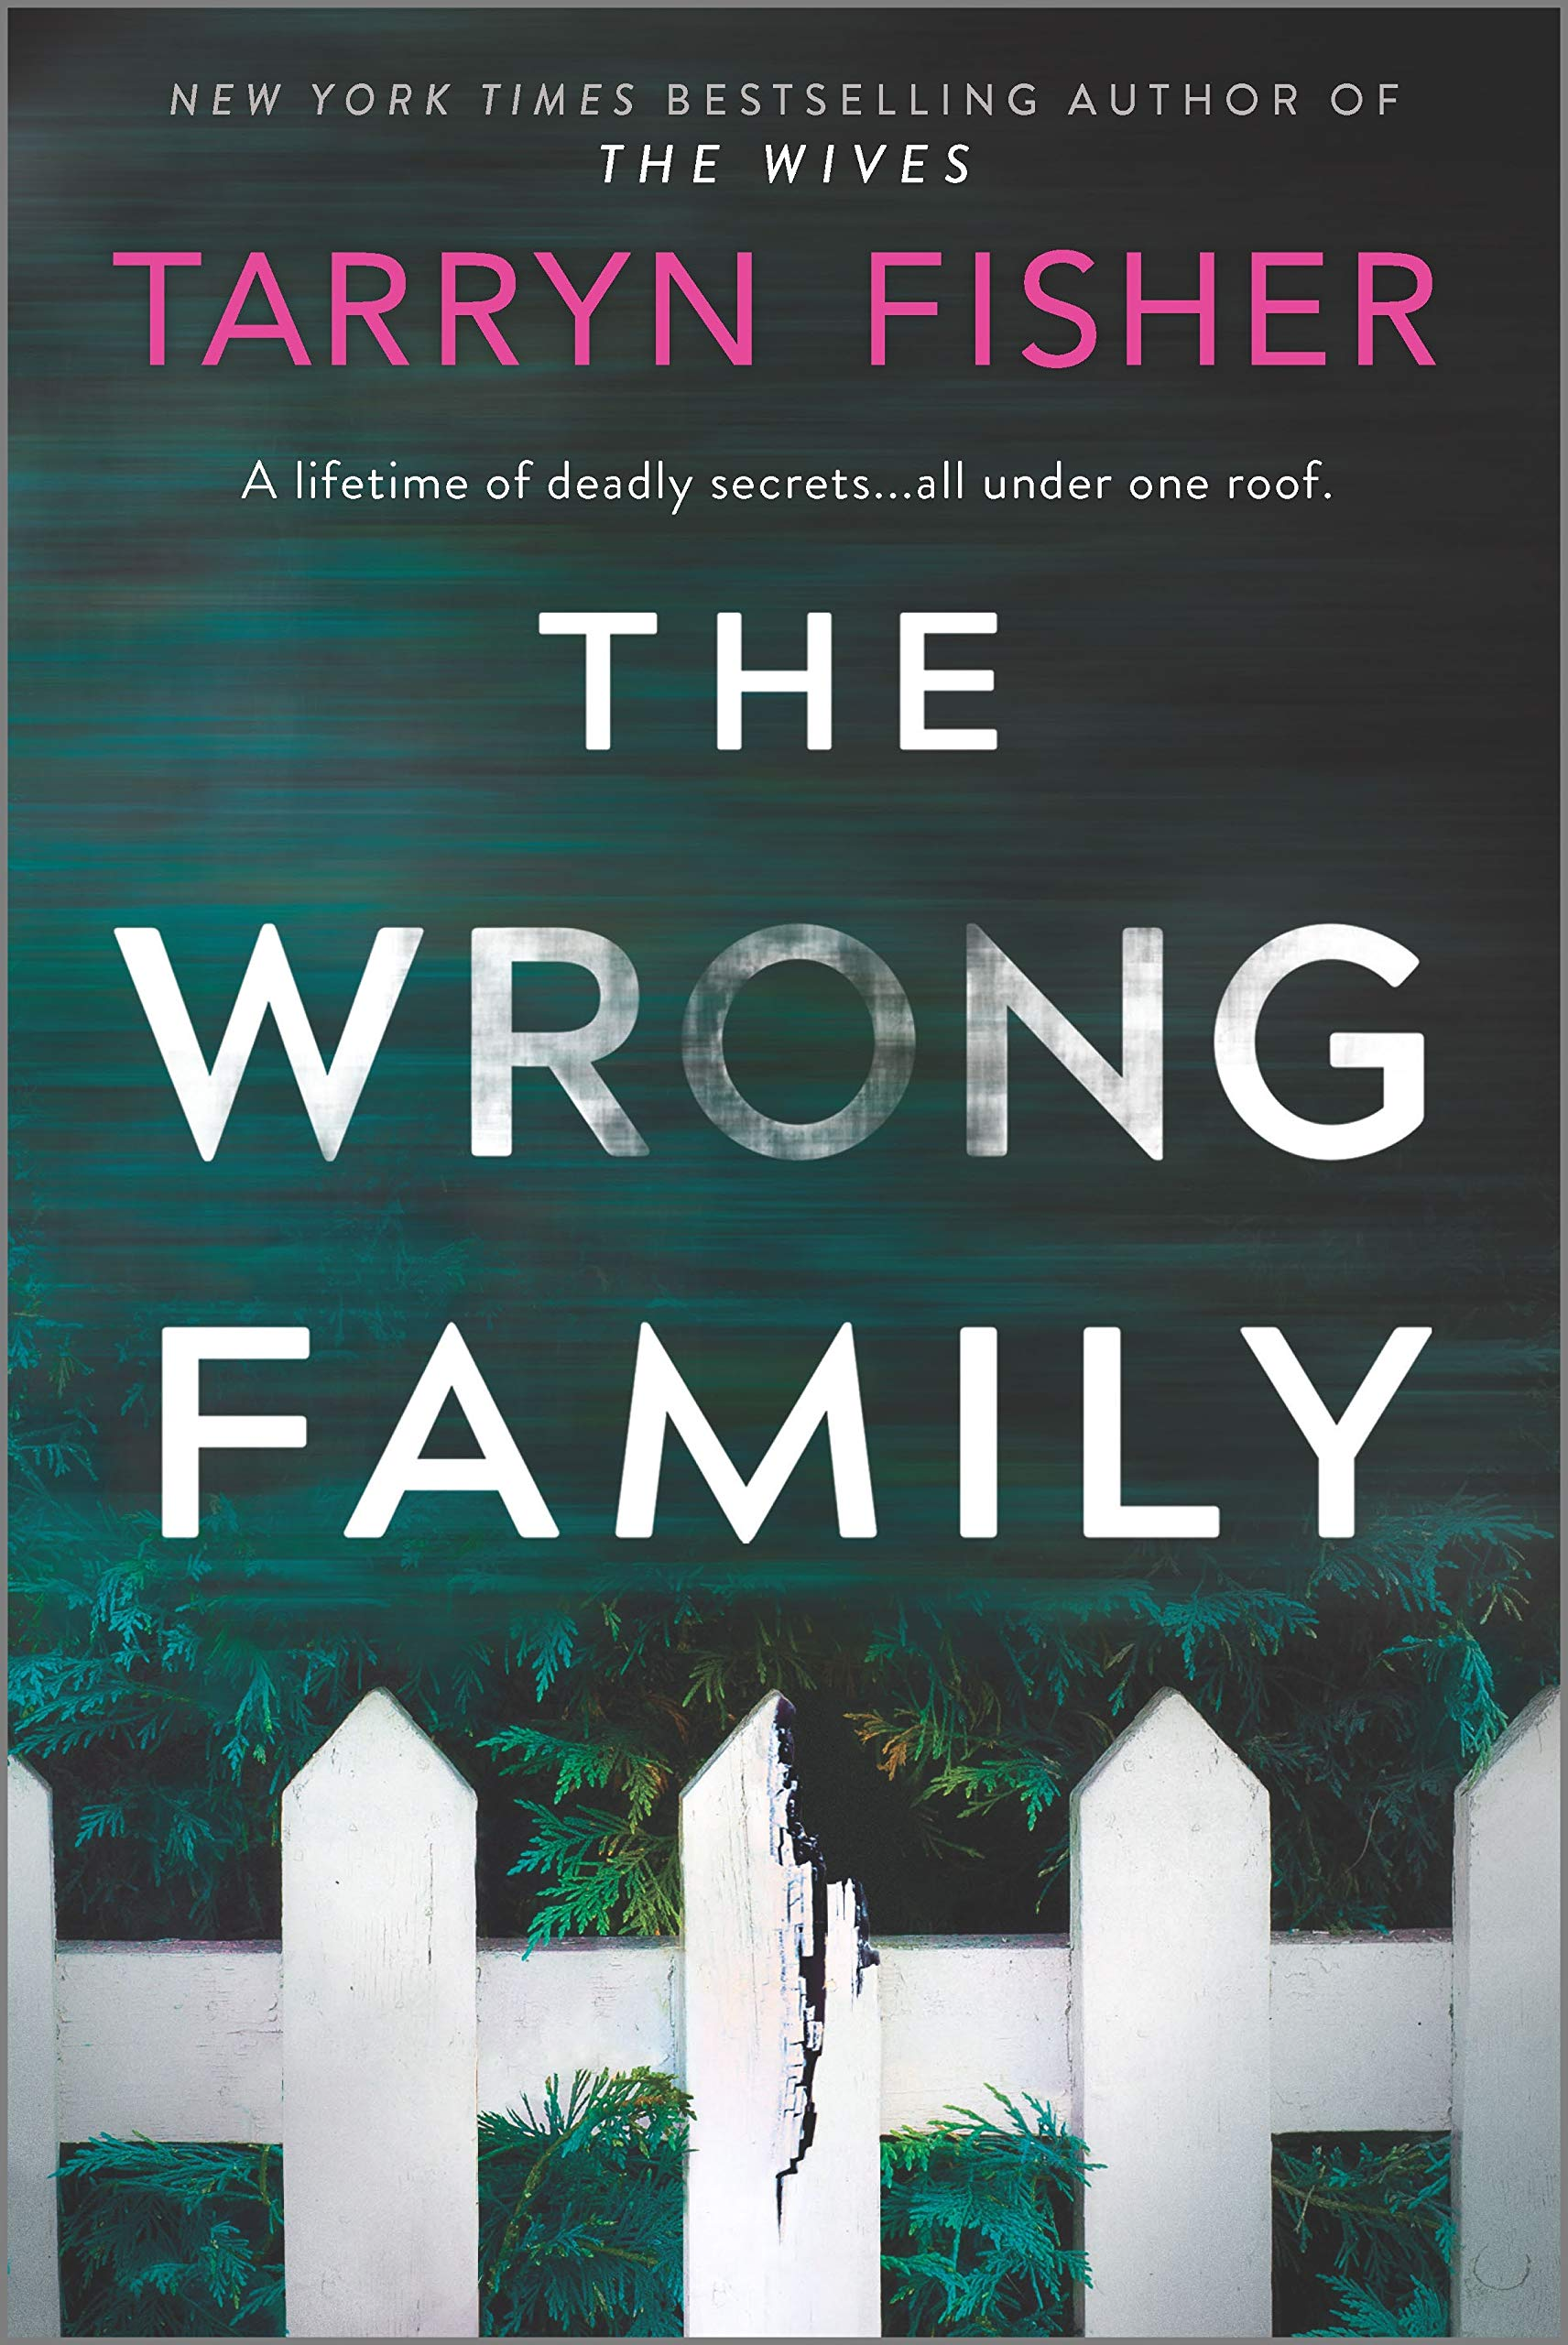 The Wrong Family Tarryn Fisher PDF Free Download